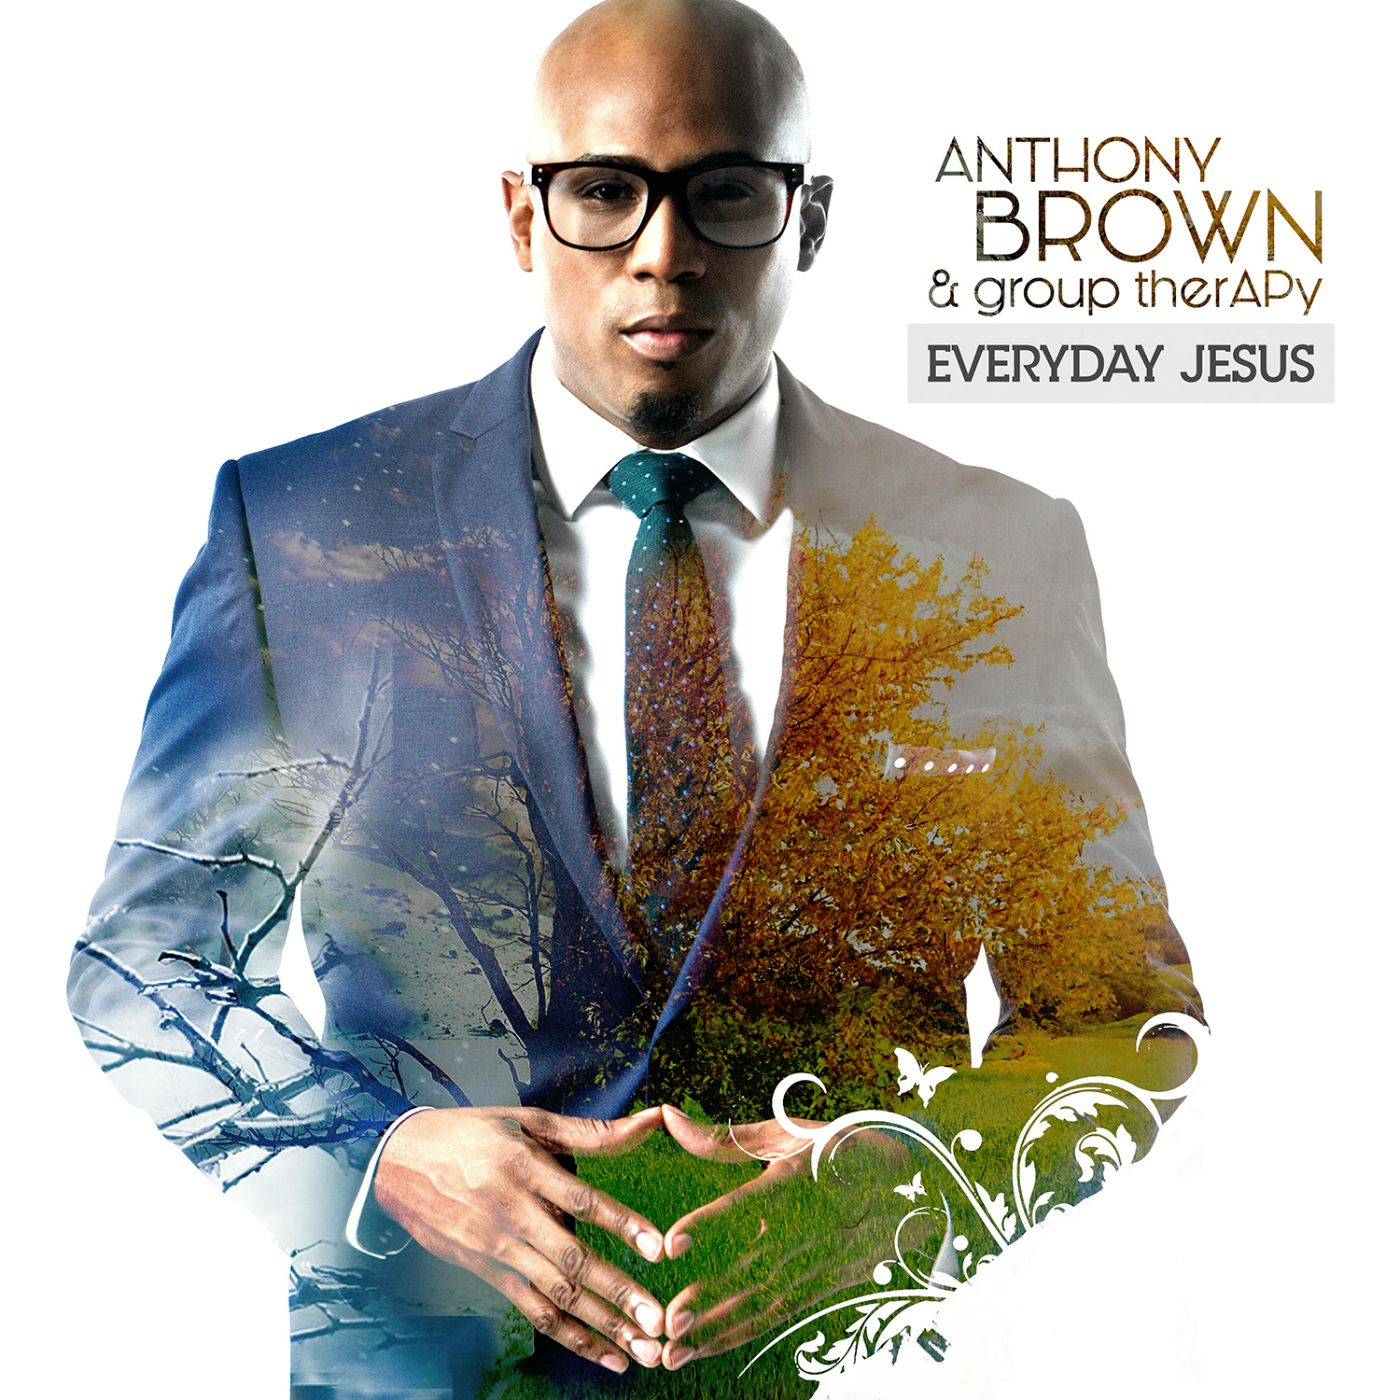 Top Ten: Anthony Brown & group therAPy top Billboard Gospel Chart